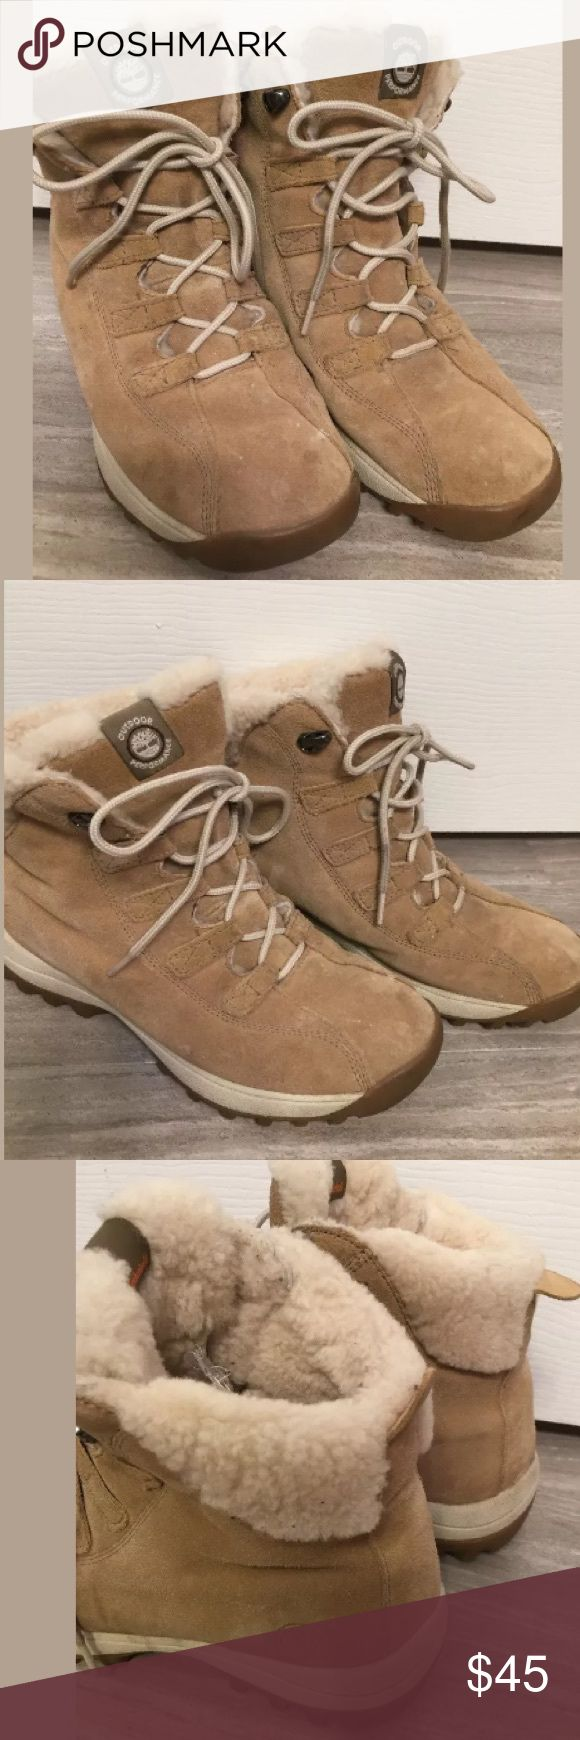 Timberland hiking Boots 9 Beige timberland hiking boots. Sherpa lined. Few light marks. Overall great shape! Size 9 Timberland Shoes Ankle Boots & Booties